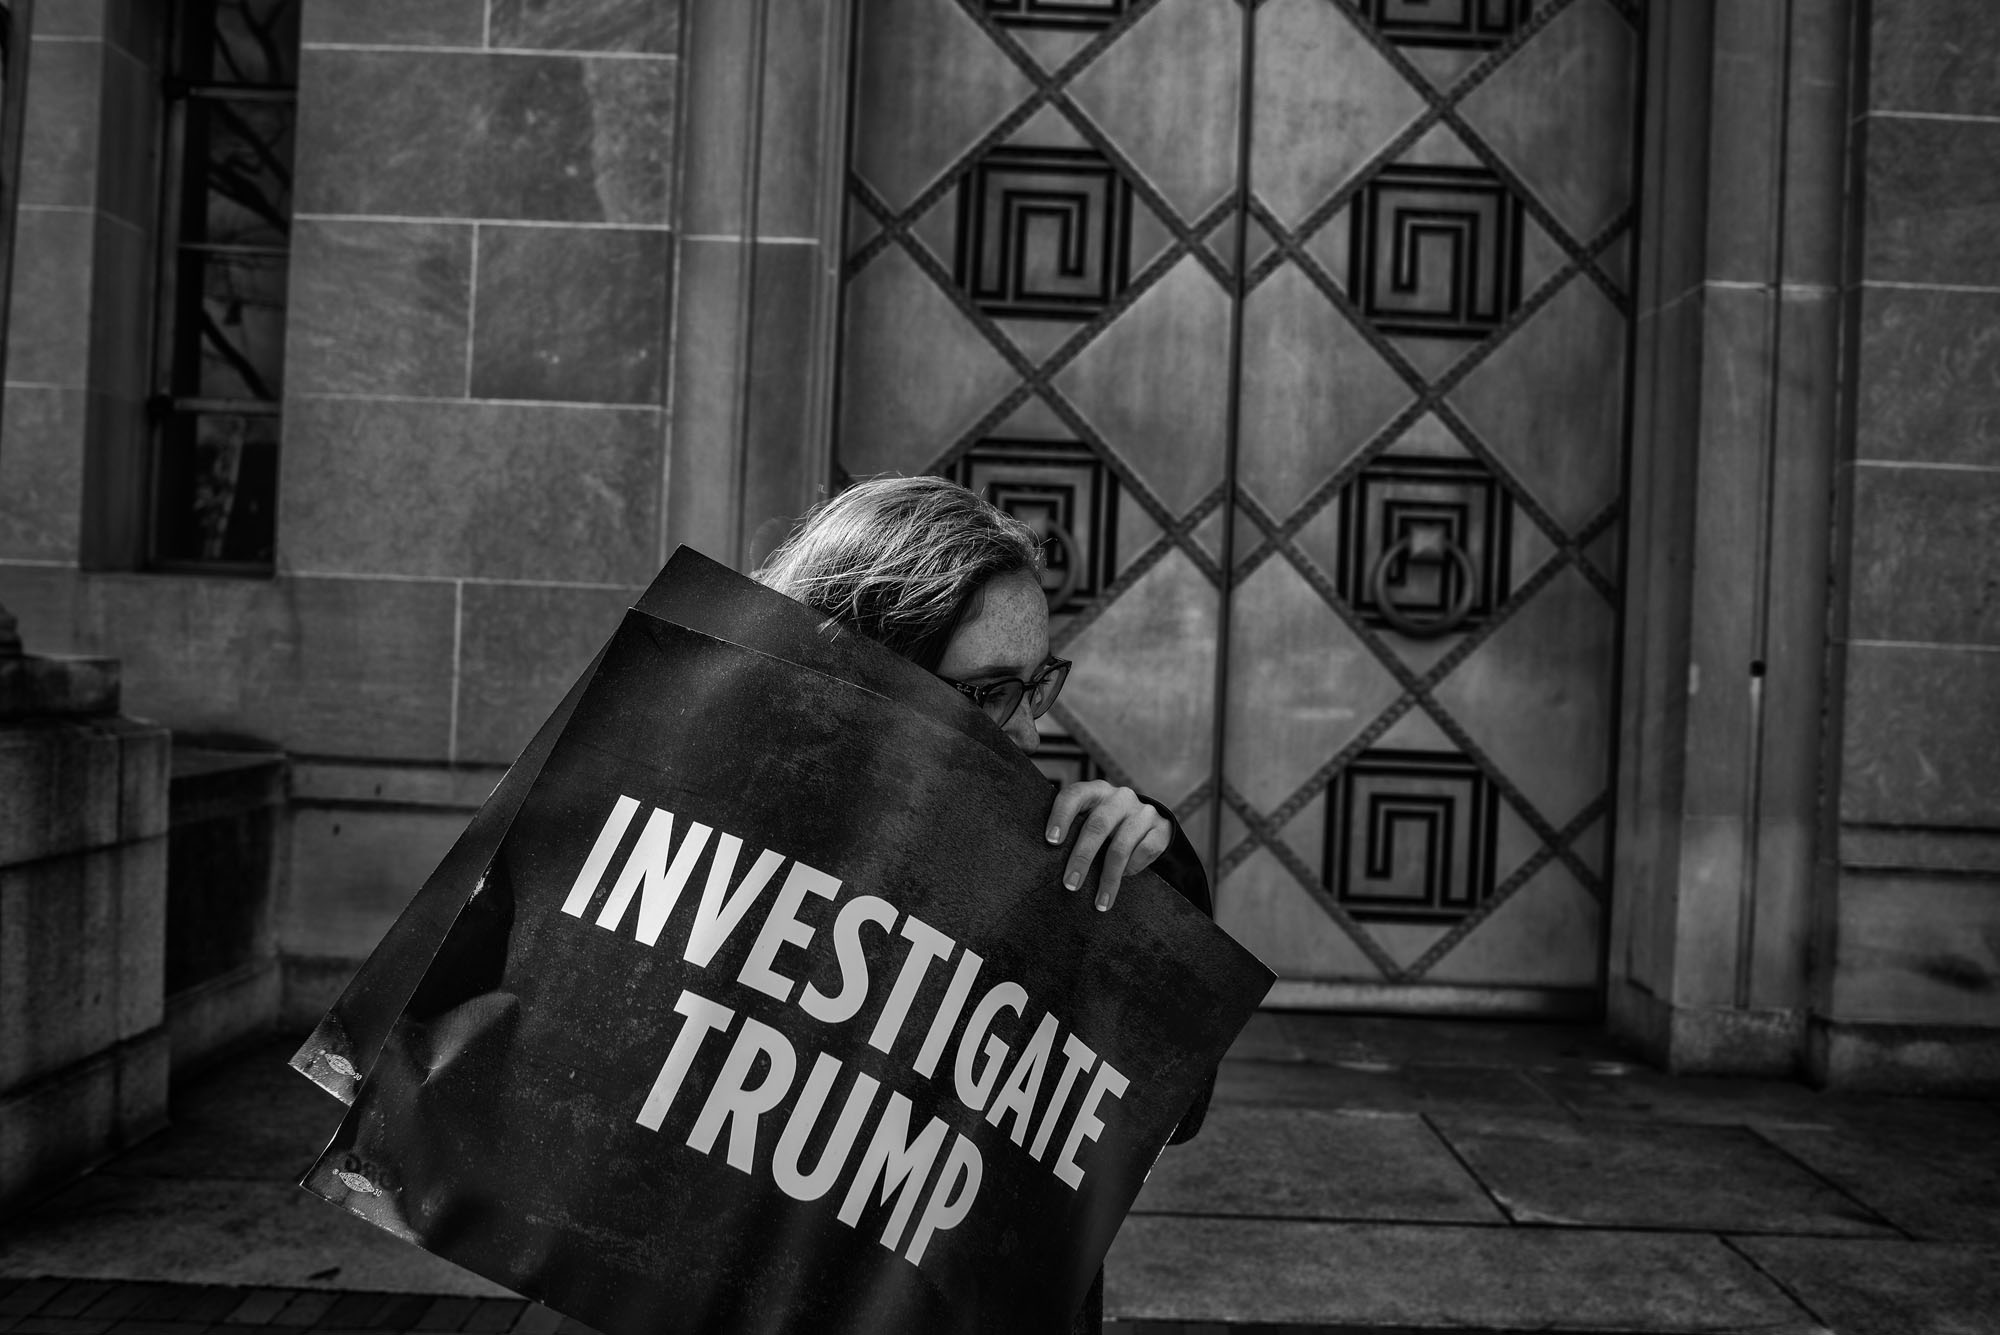 A protester outside the US Department of Justic demanding Attorney General Jeff Sessions recuse himself from any investigations into Russia, on March 2, 2017.